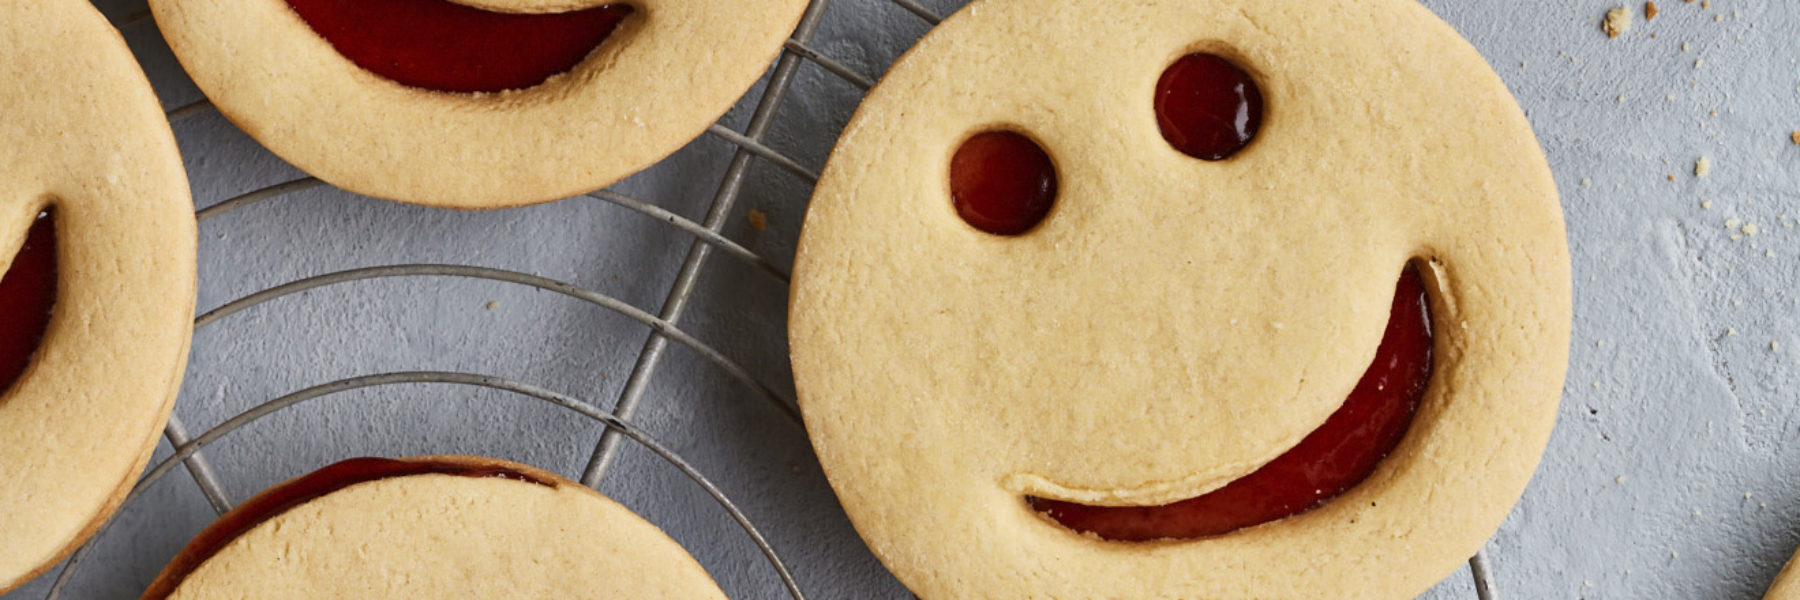 Show us your Smiley Face Biscuits to win!